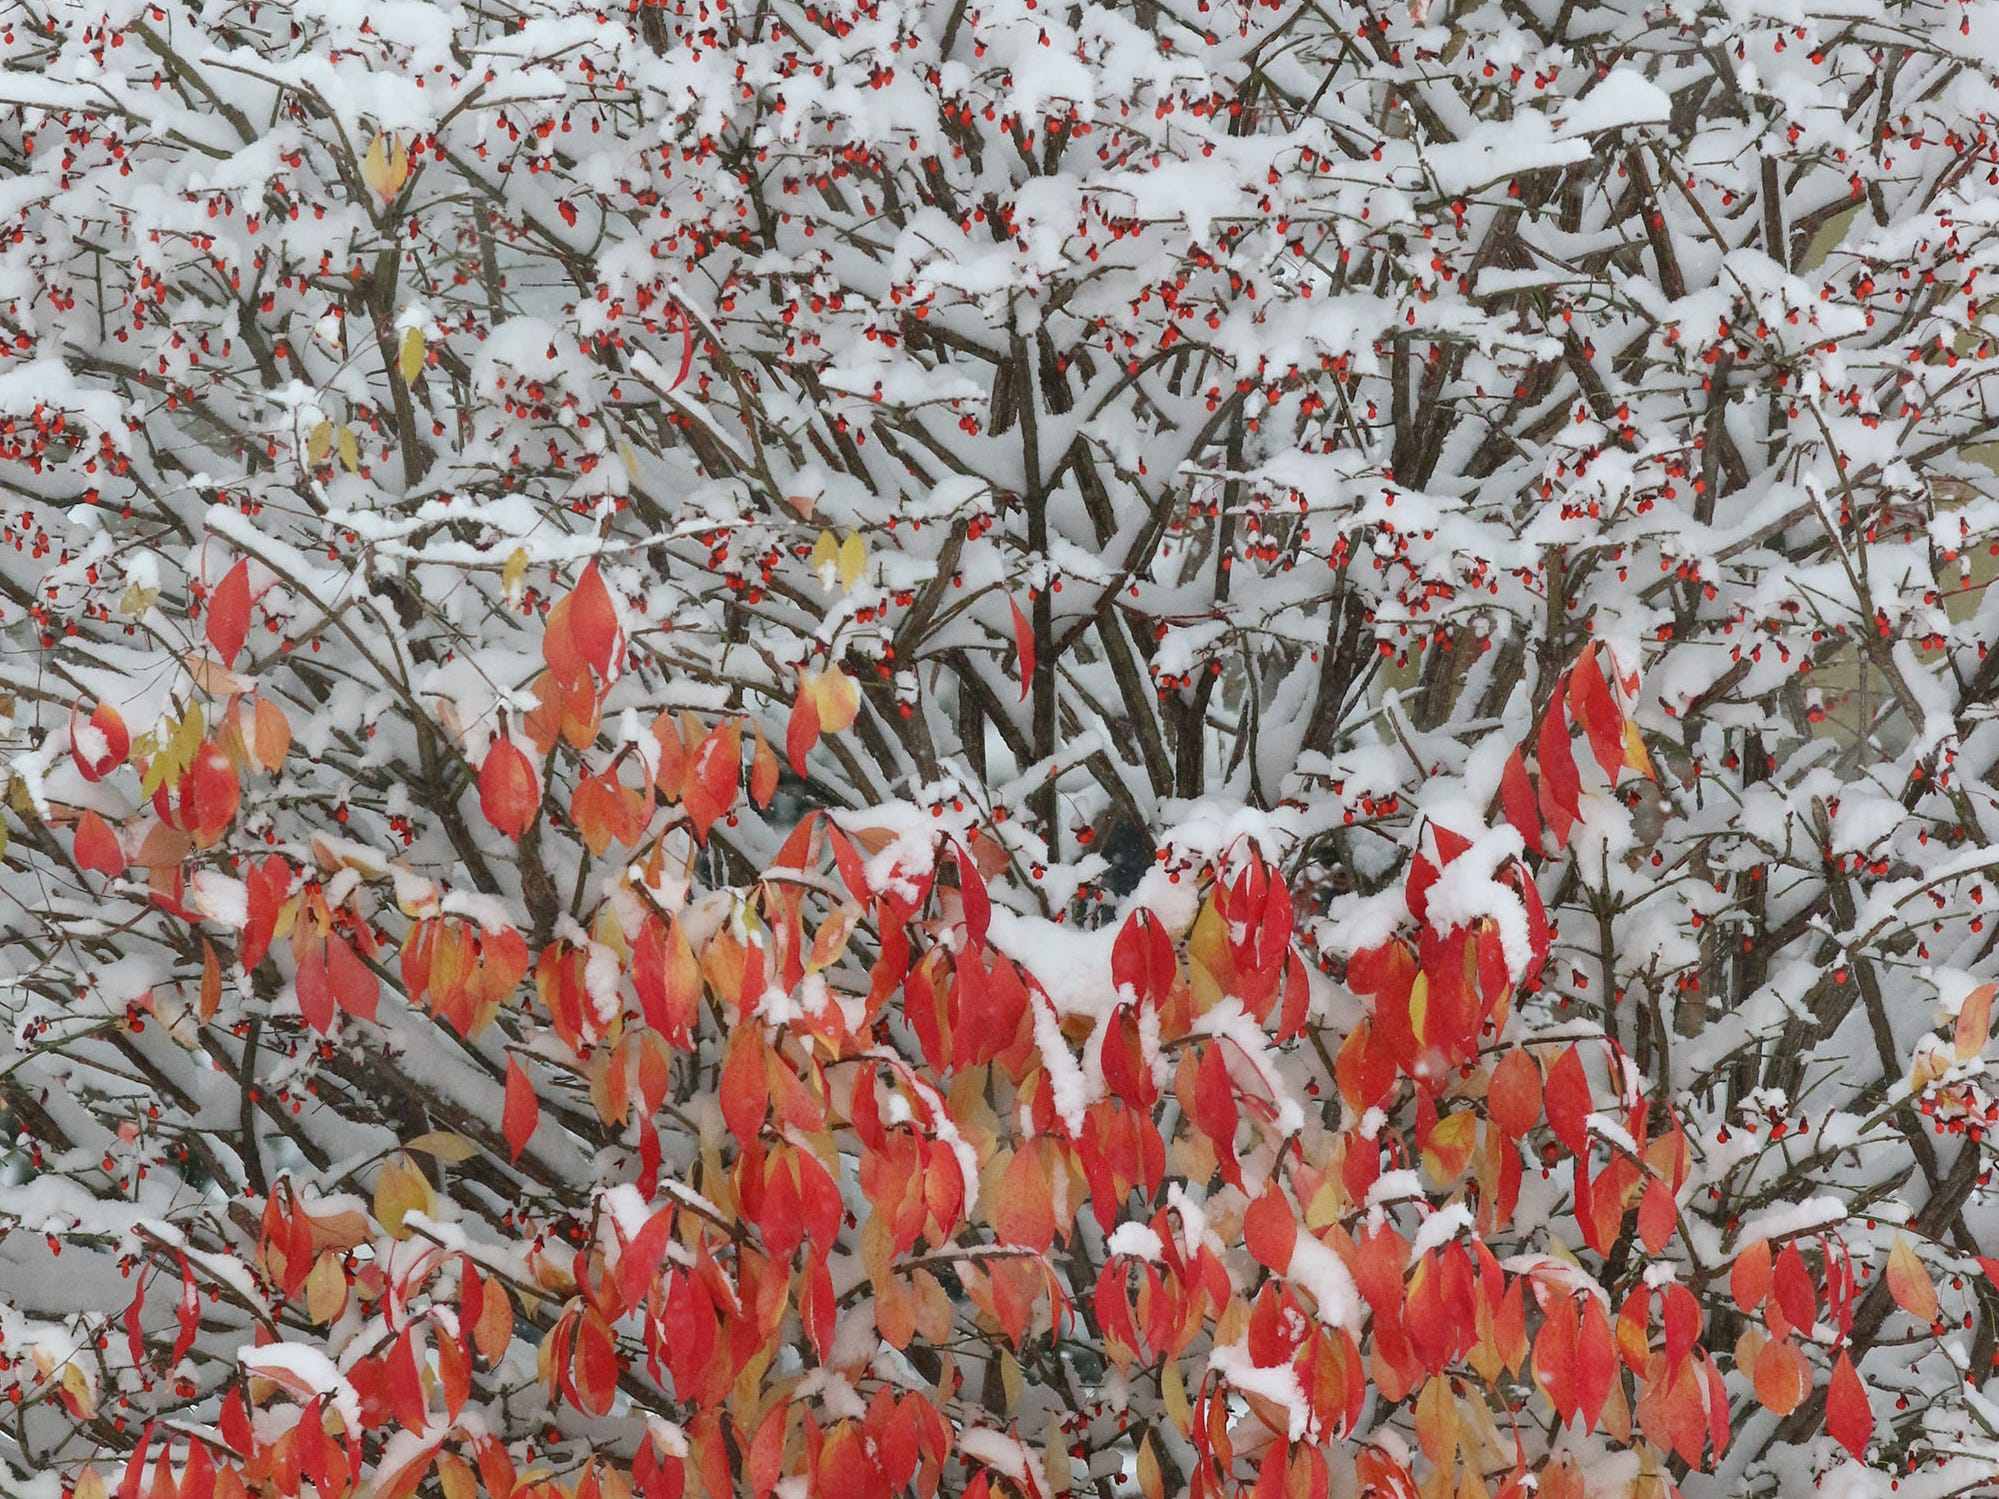 A burning bush contrasts with freshly fallen snow along South 12th Street, Friday, November 9, 2018, in Sheboygan, Wis.